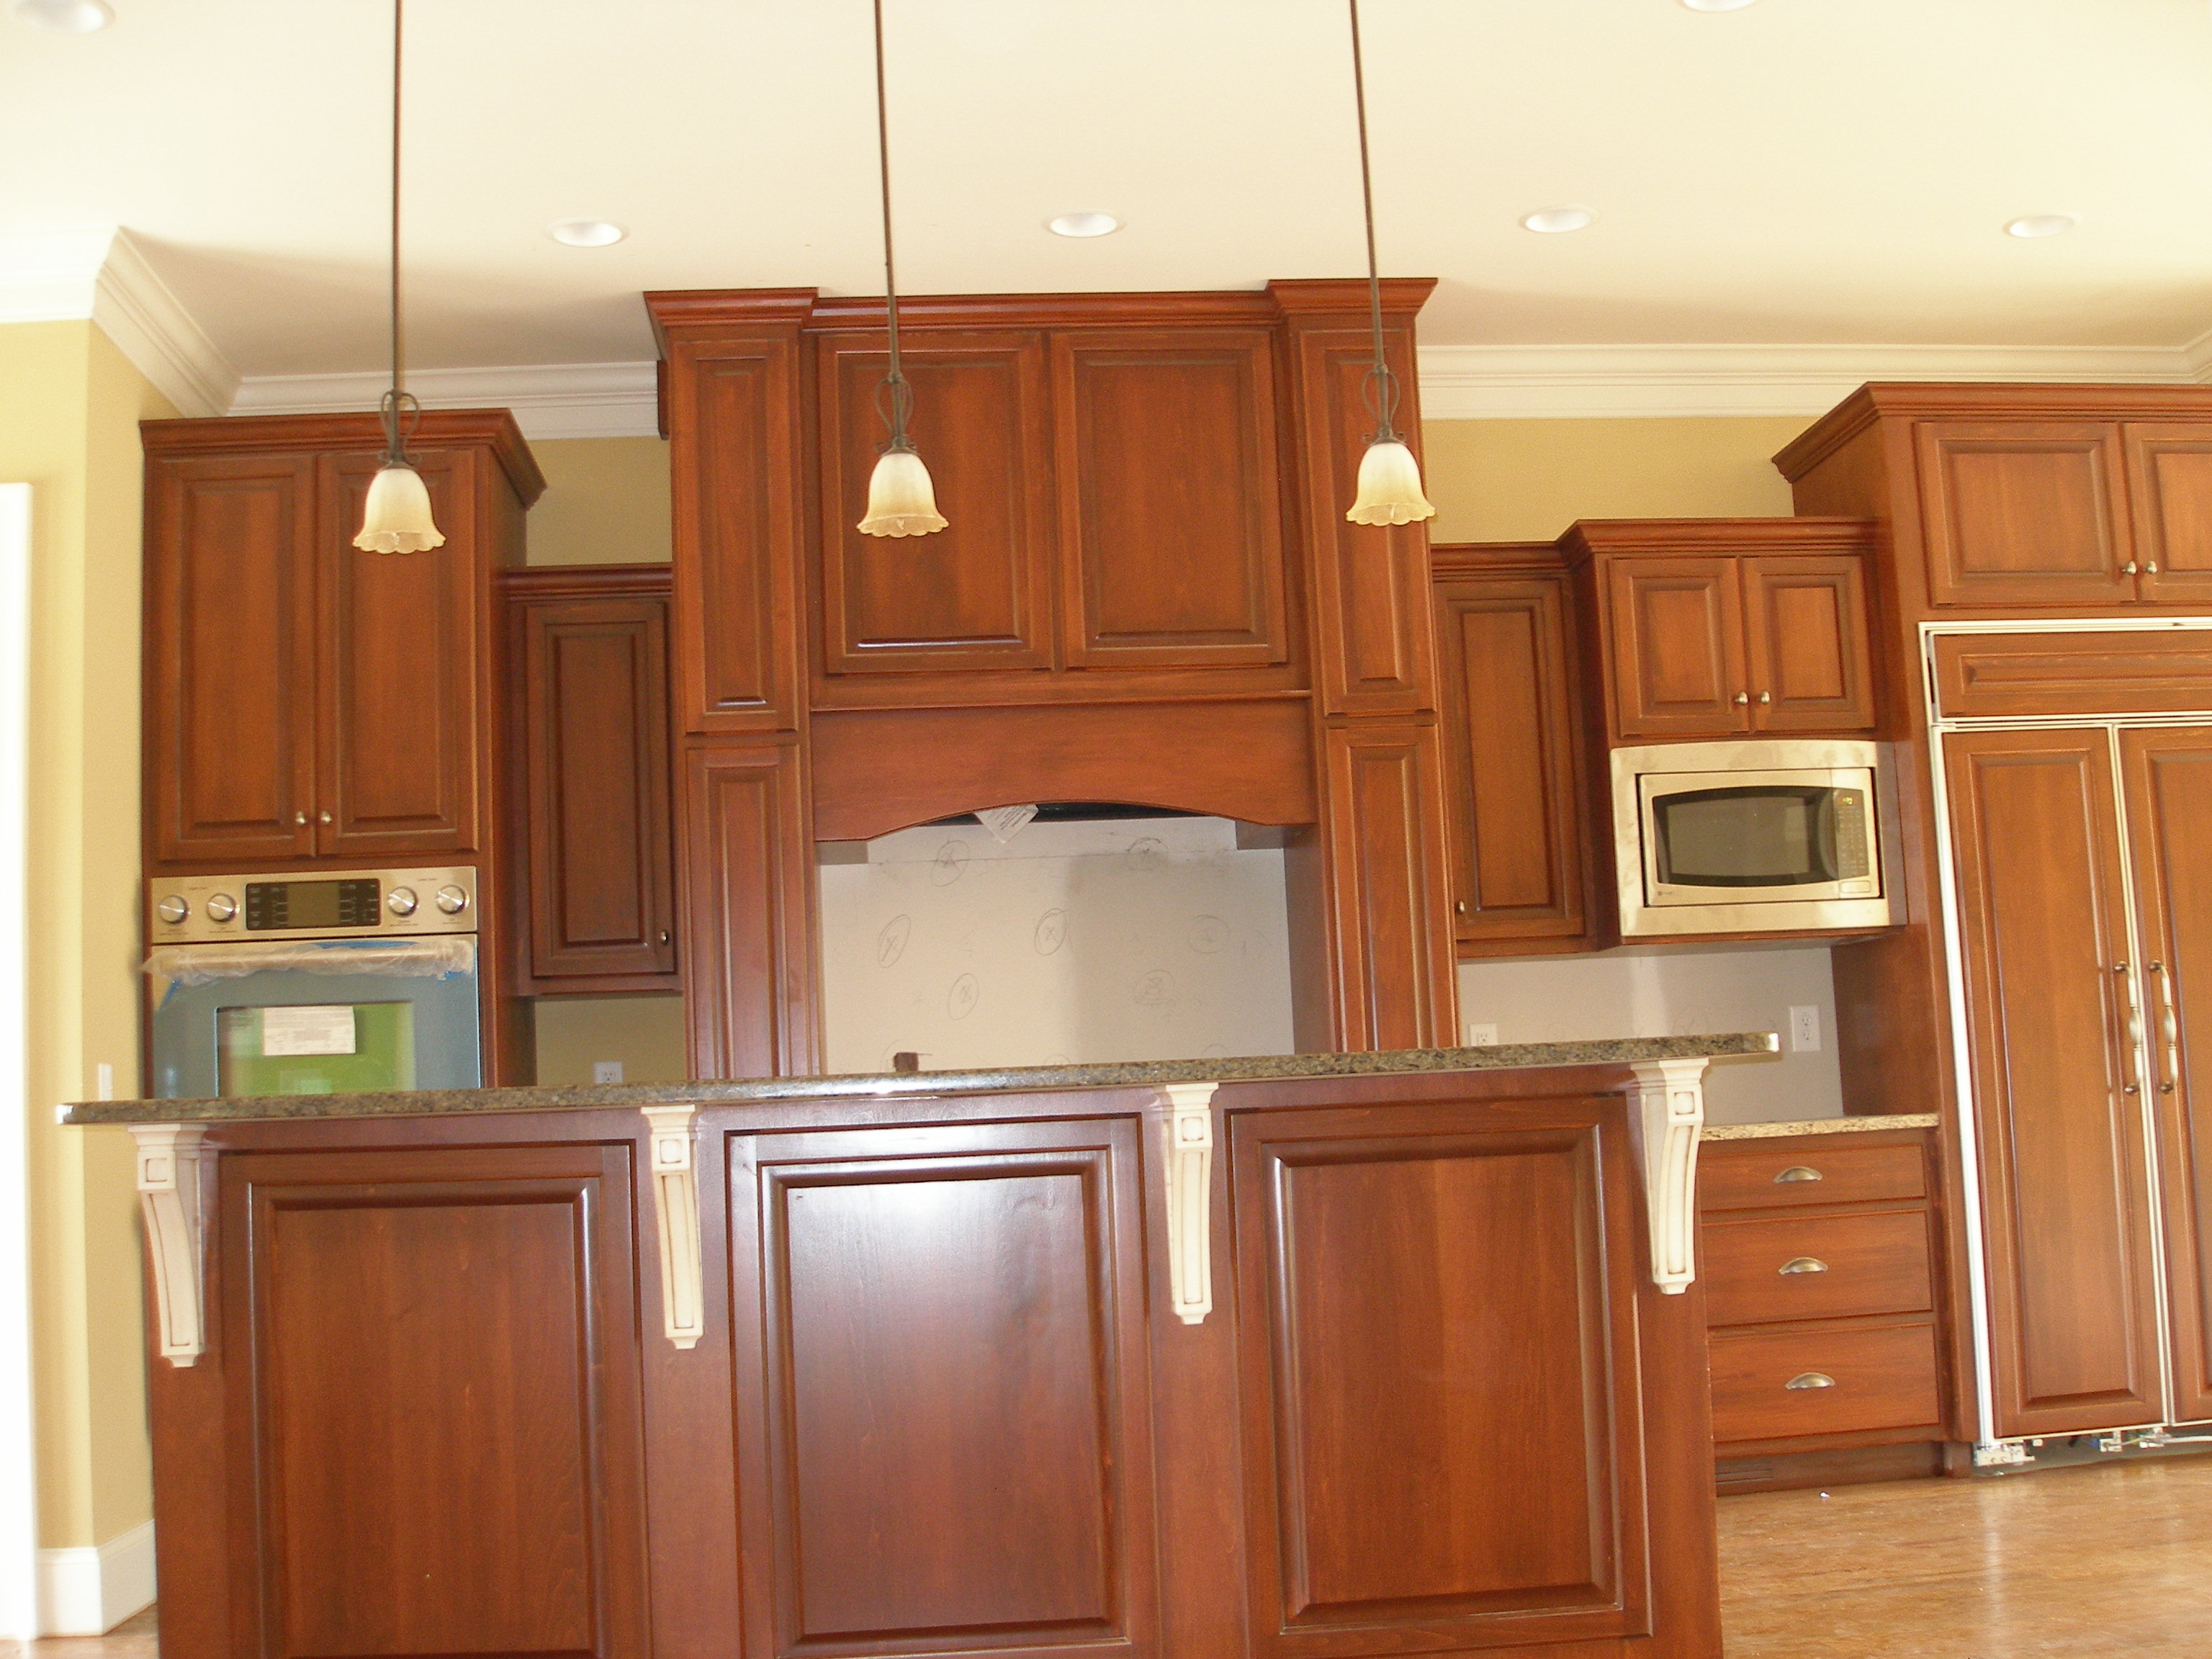 Kitchen Cabinet Basics The Best Types Of Wood For Building Cabinets The Basic